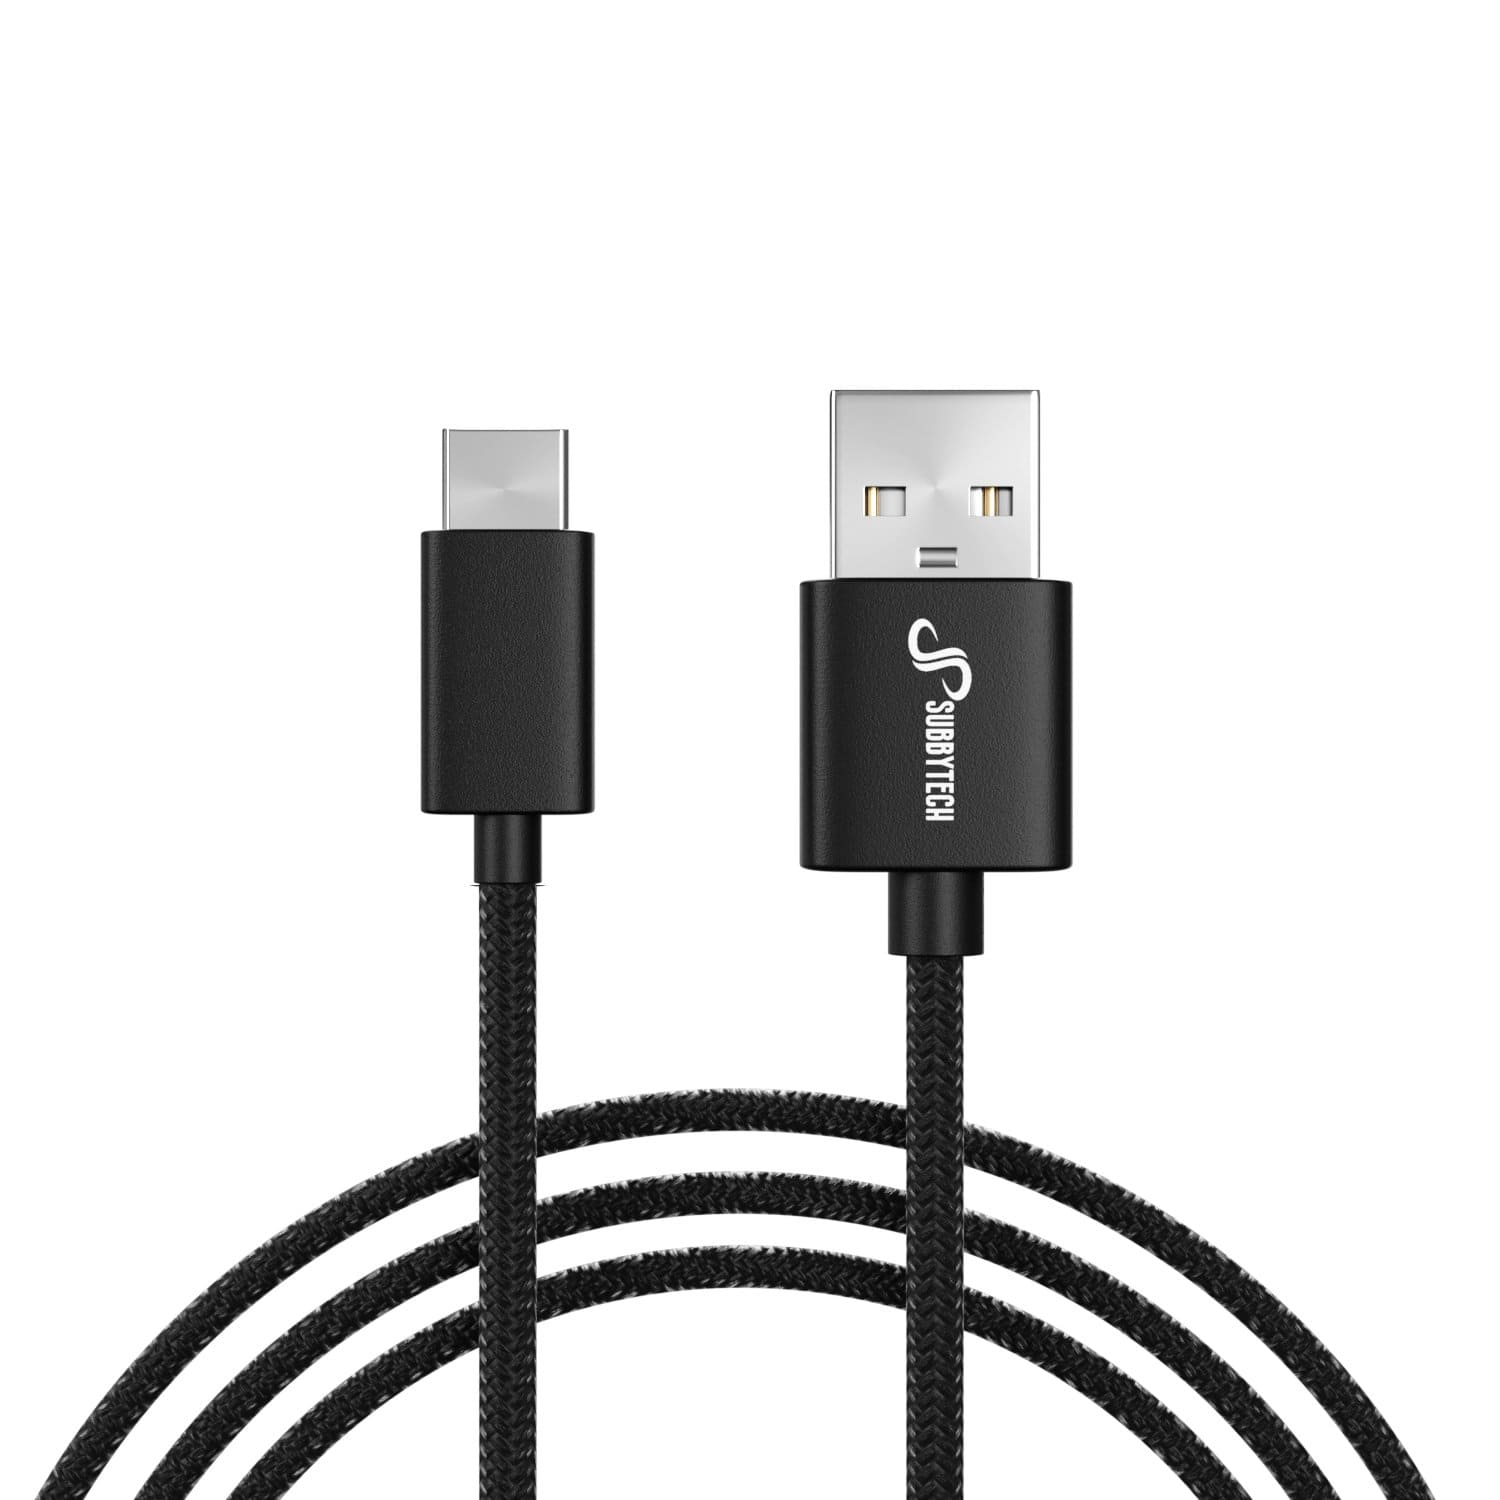 USB C Cable from Subbytech